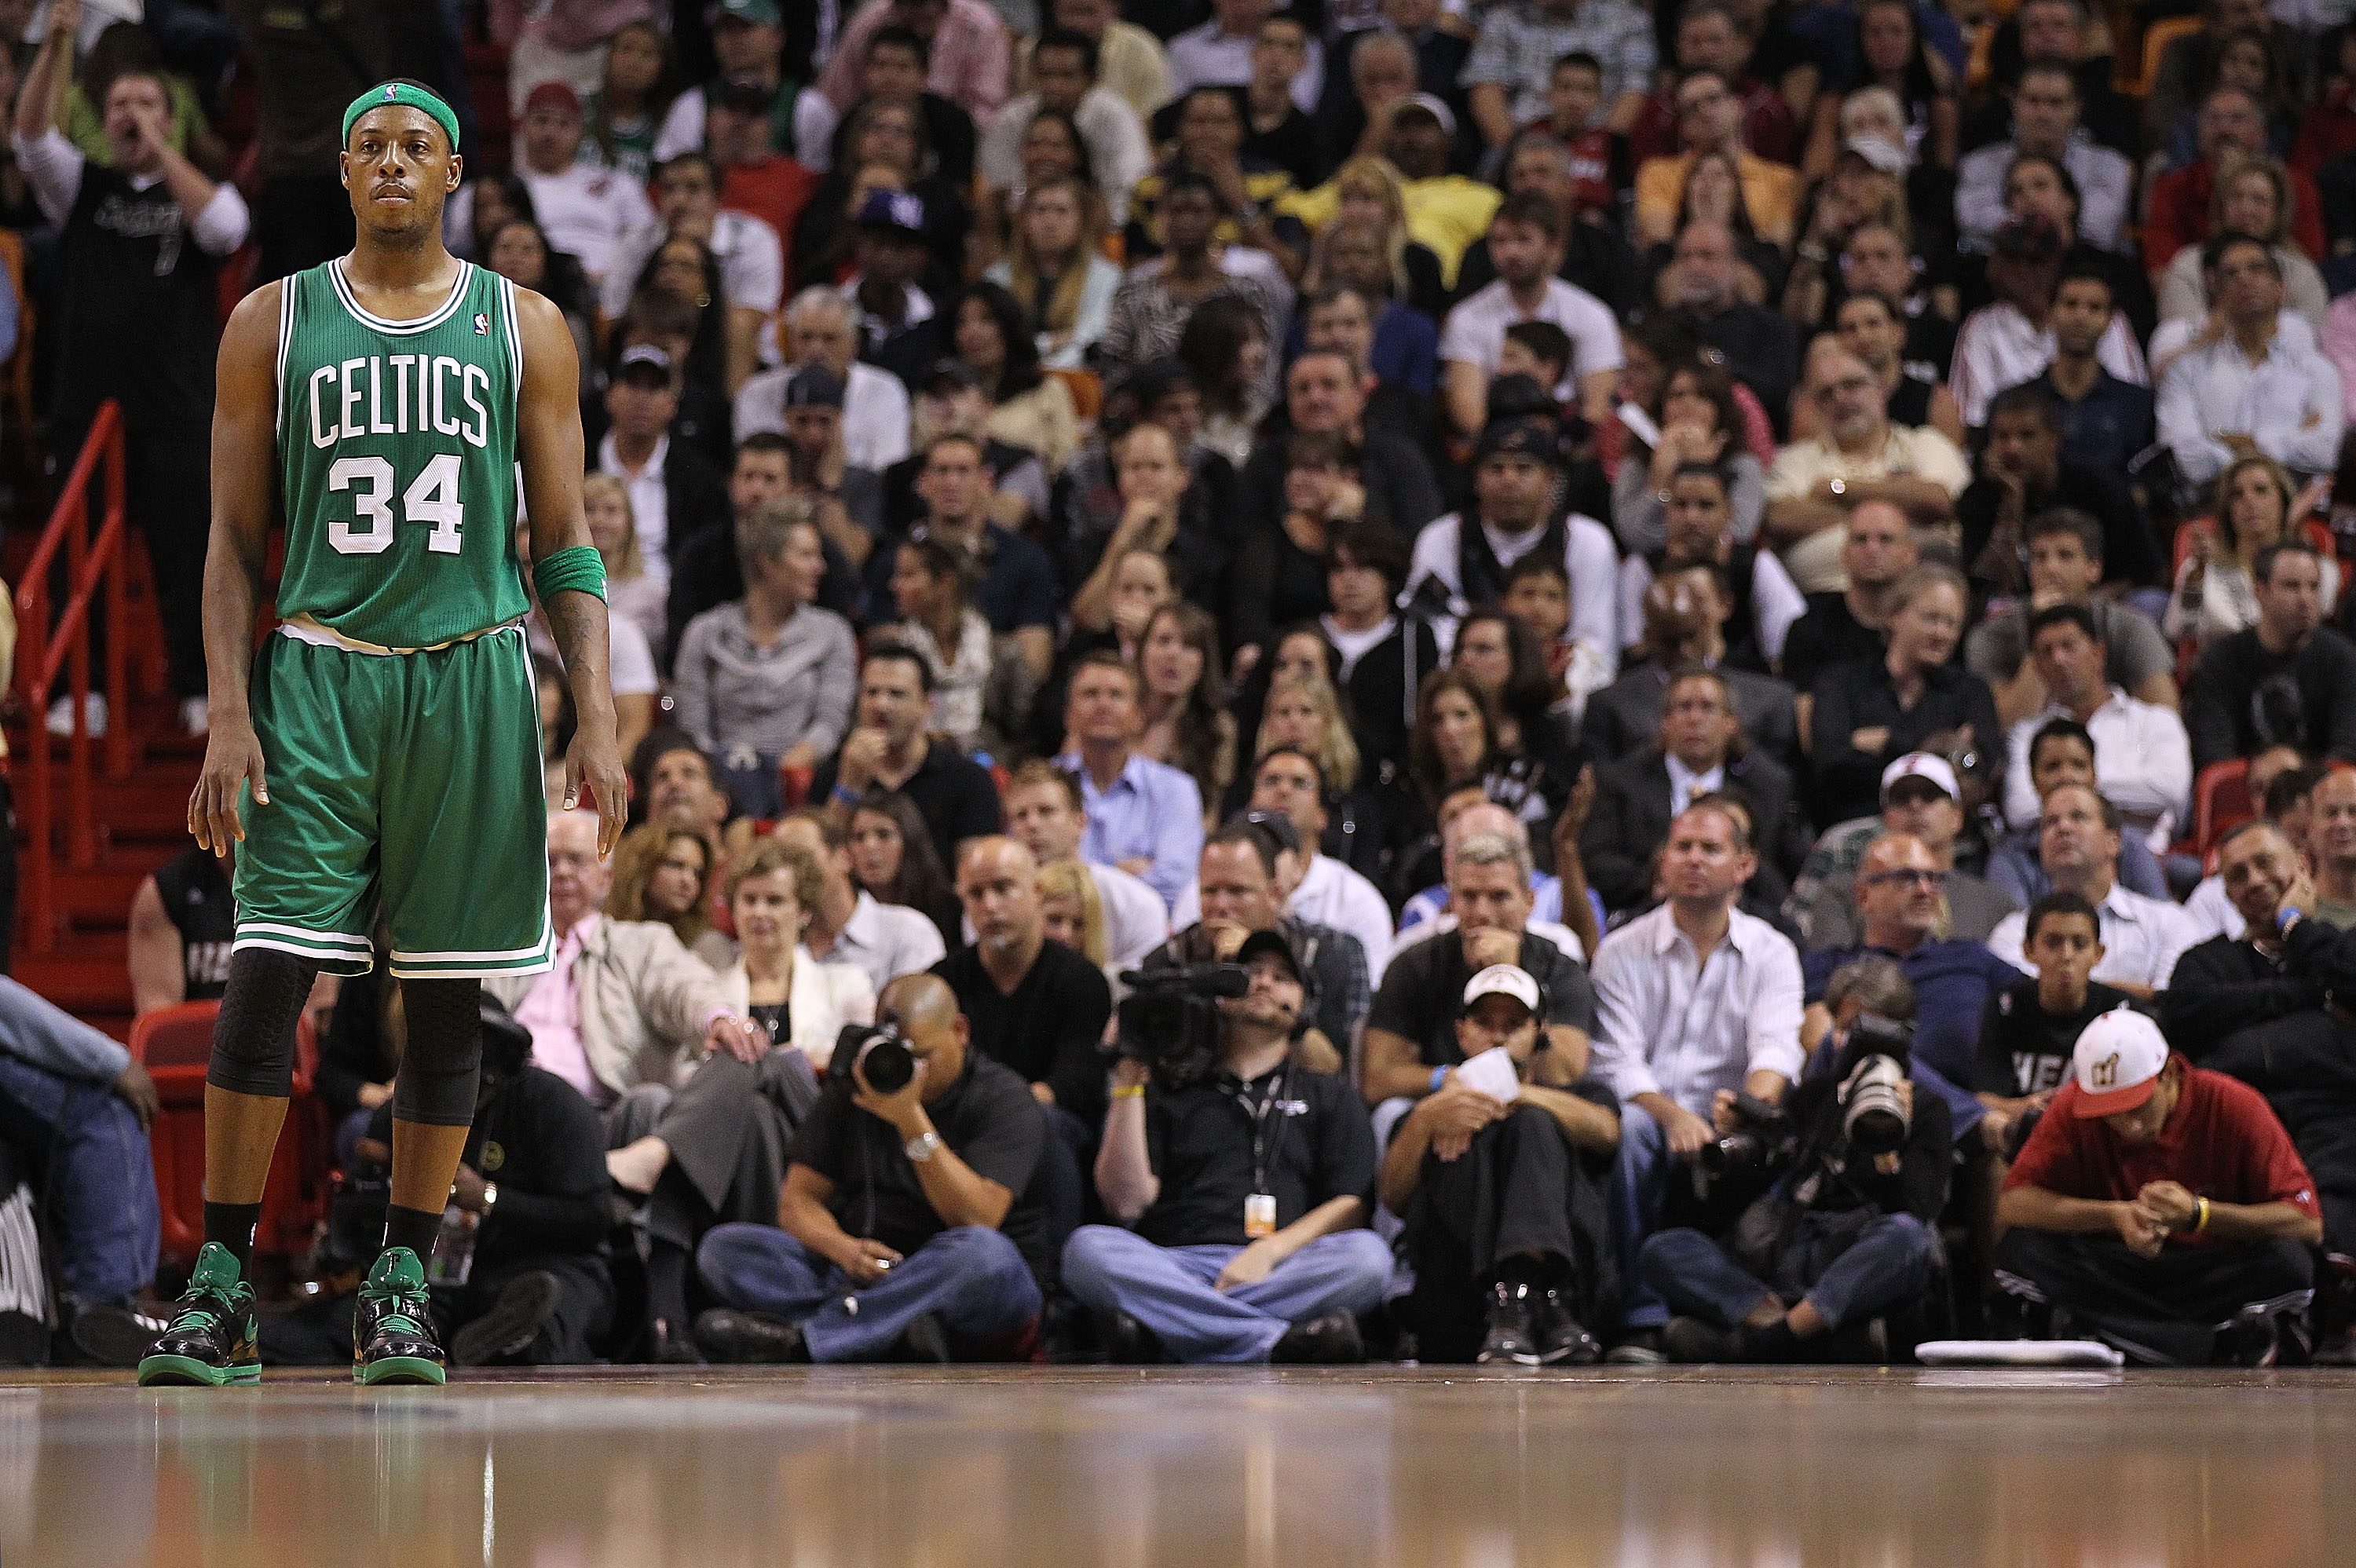 MIAMI - NOVEMBER 11:  Paul Pierce #34 of the Boston Celtics waits during a foul shot during a game against the Miami Heat at American Airlines Arena on November 11, 2010 in Miami, Florida. NOTE TO USER: User expressly acknowledges and agrees that, by down